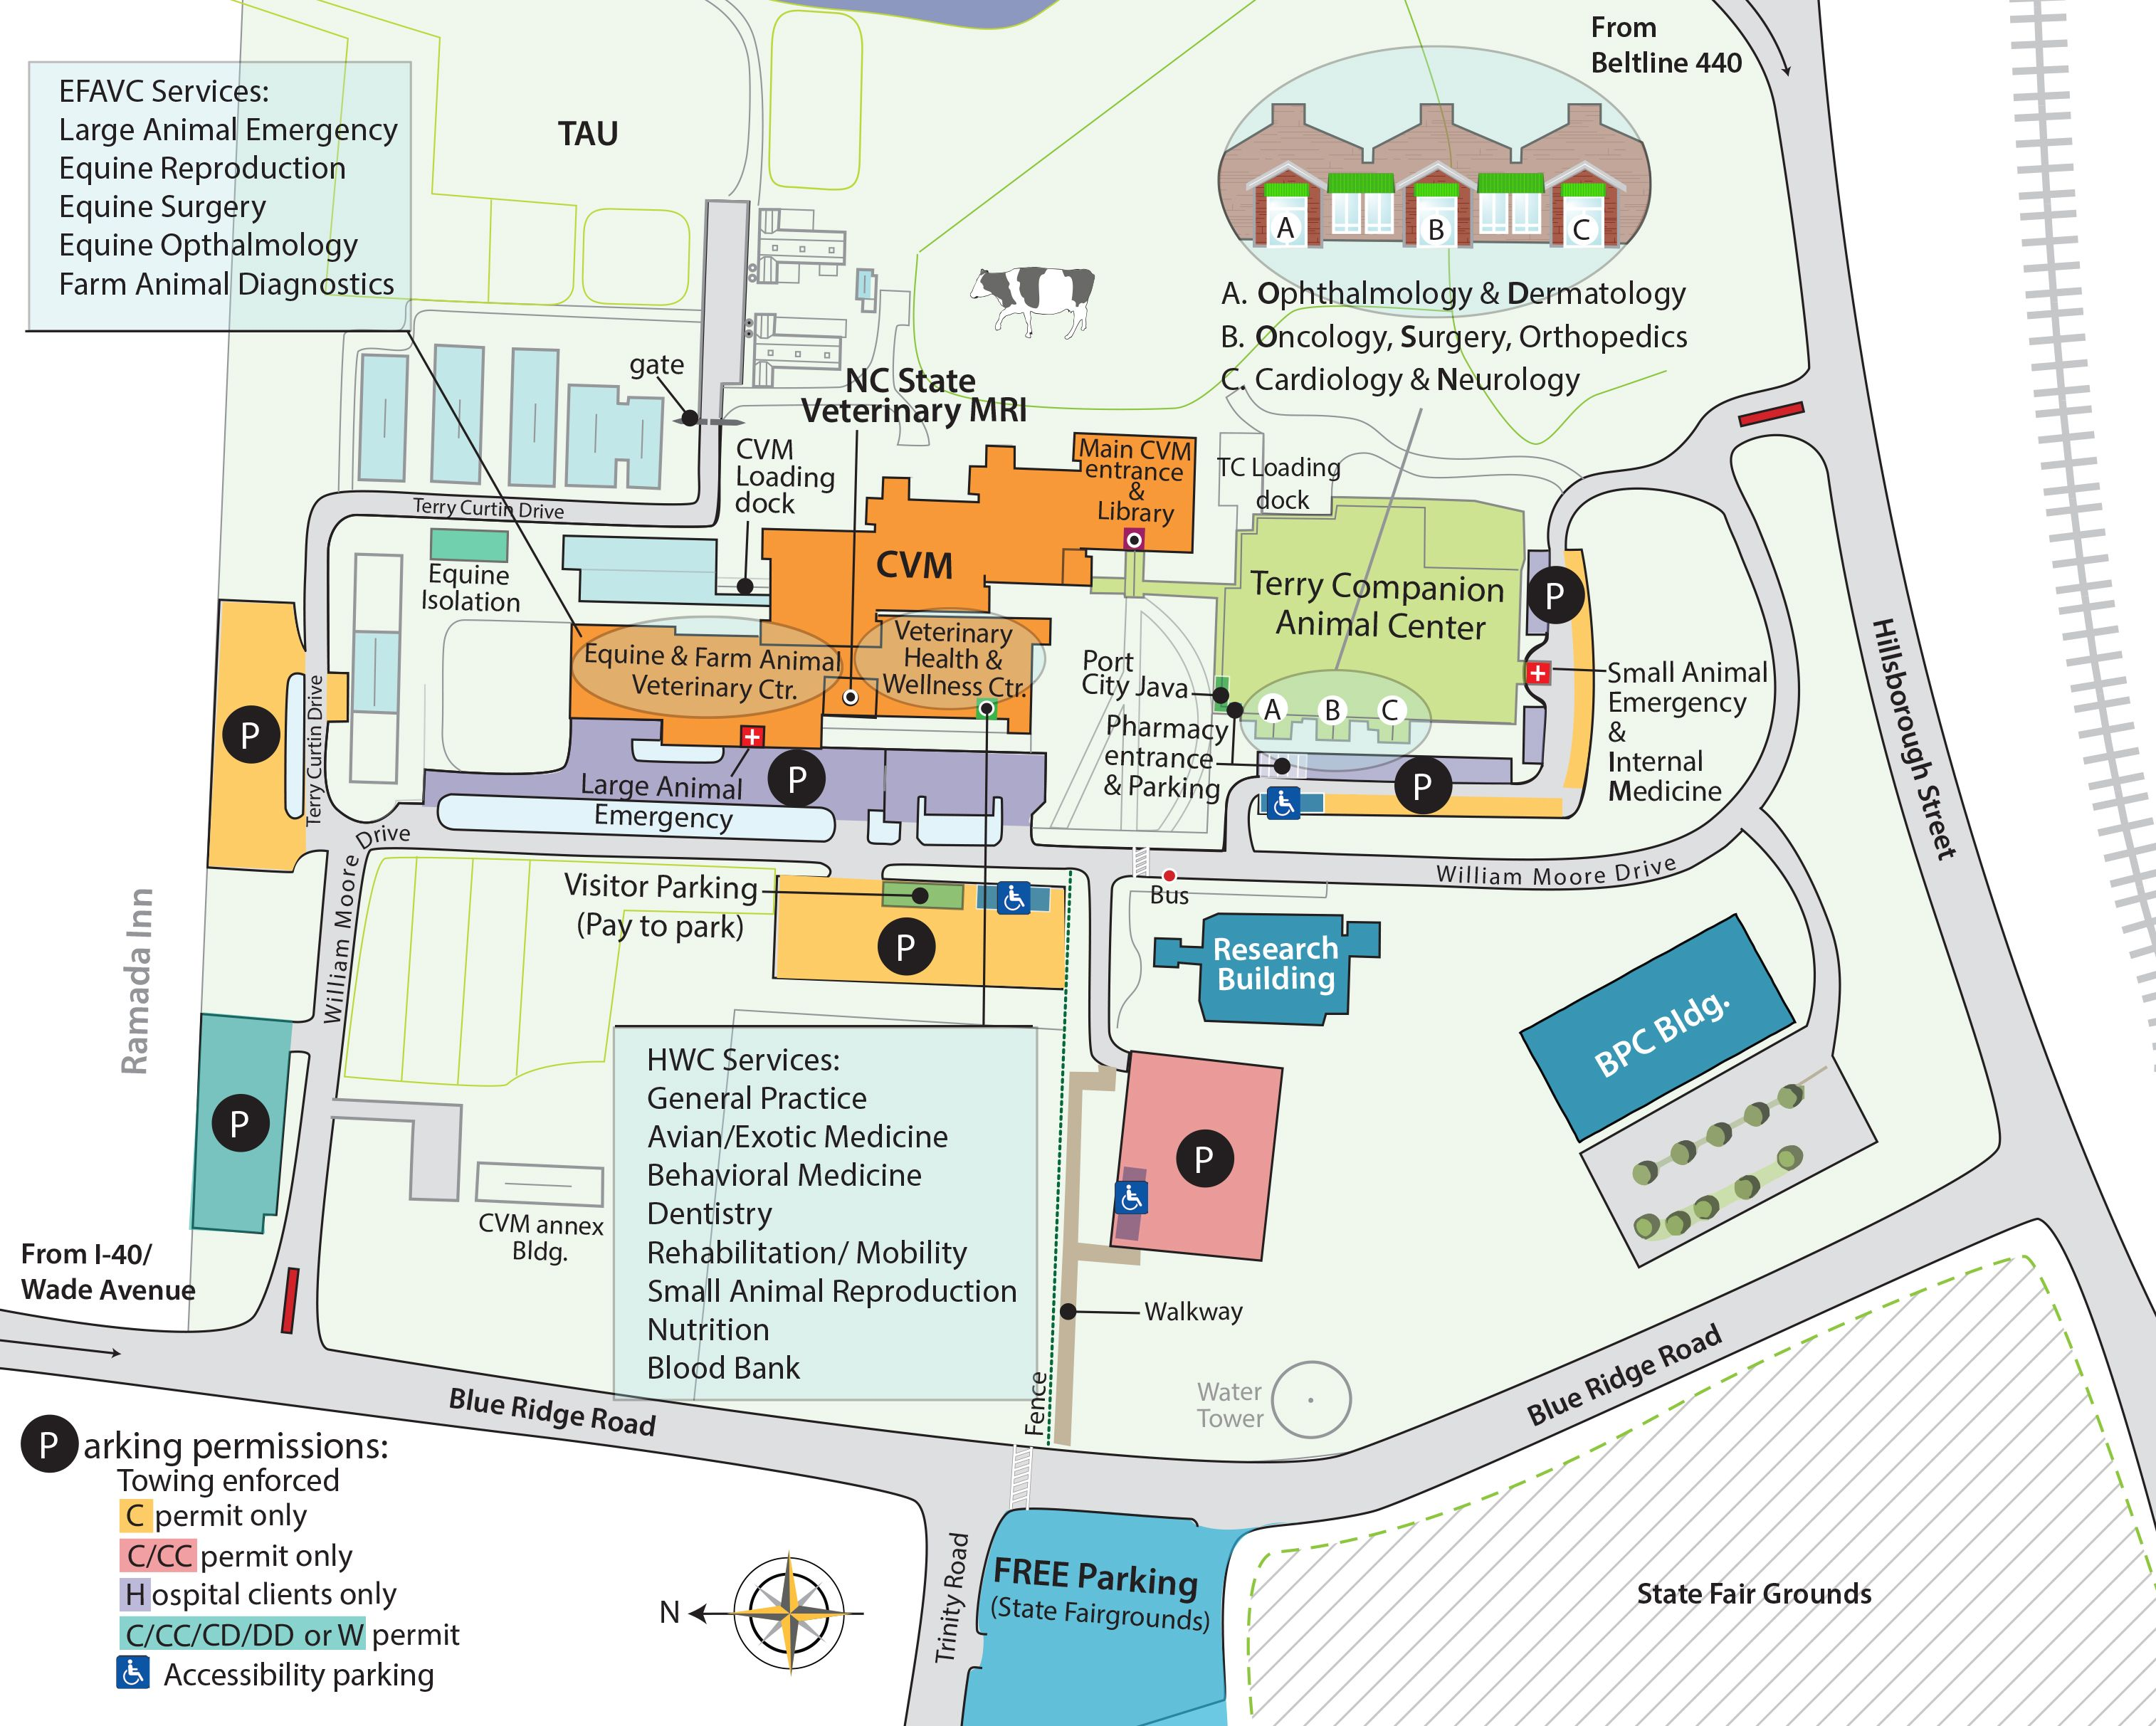 T foetus testing NC State | Veterinary services, Campus map, Map